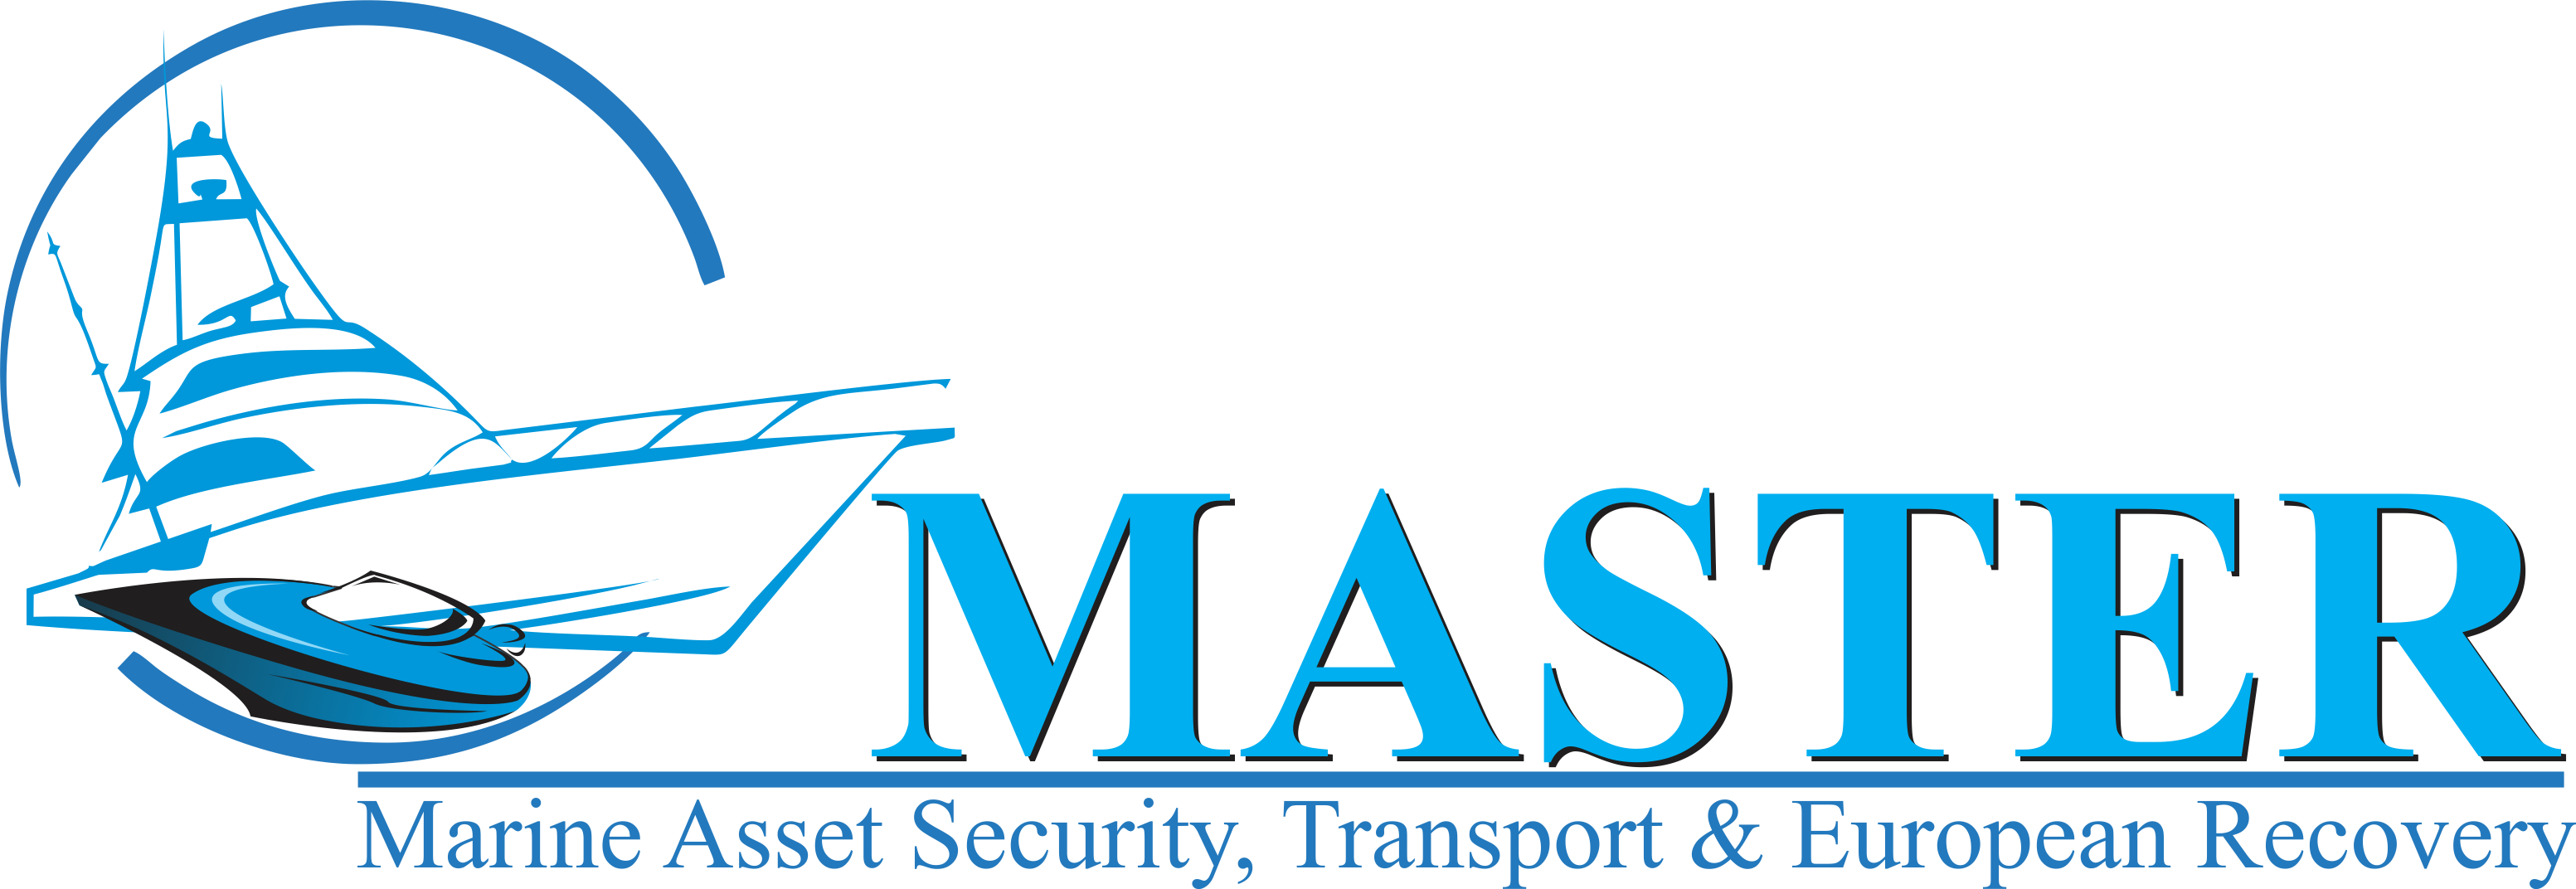 MARINE ASSET SECURITY, TRANSPORT AND EUROPEAN RECOVERY